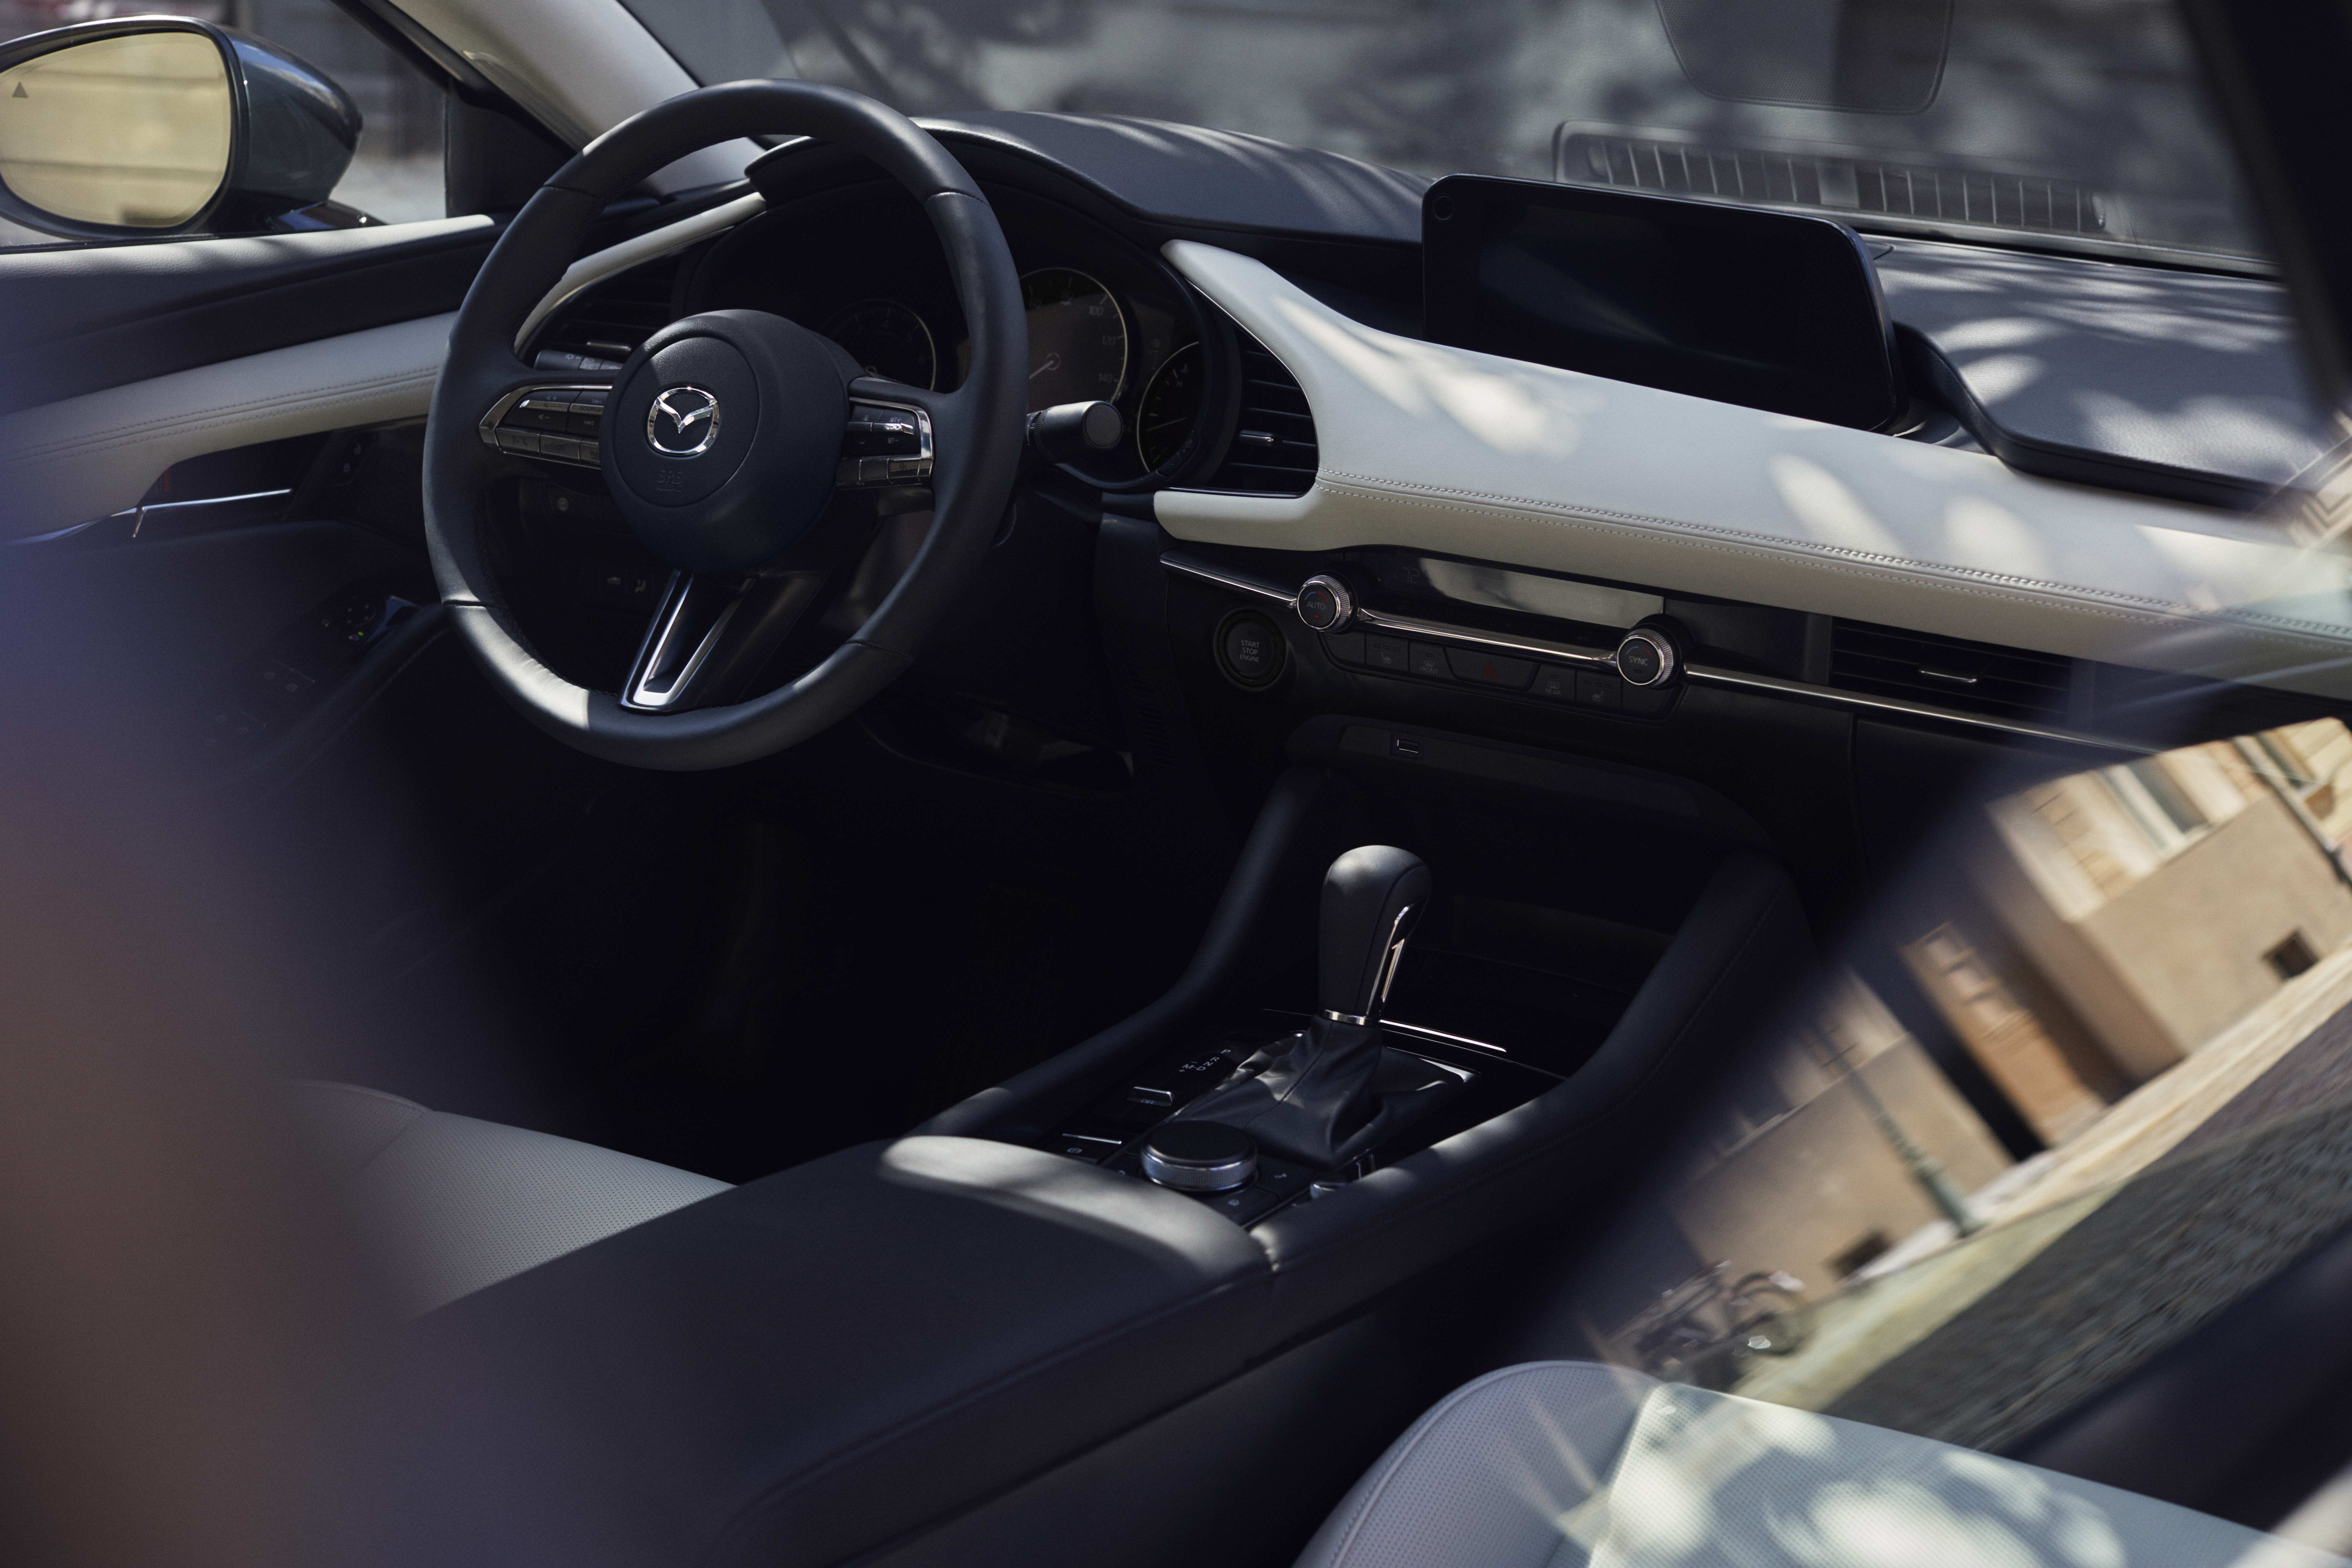 71 All New 2020 Mazda 3 Price And Review